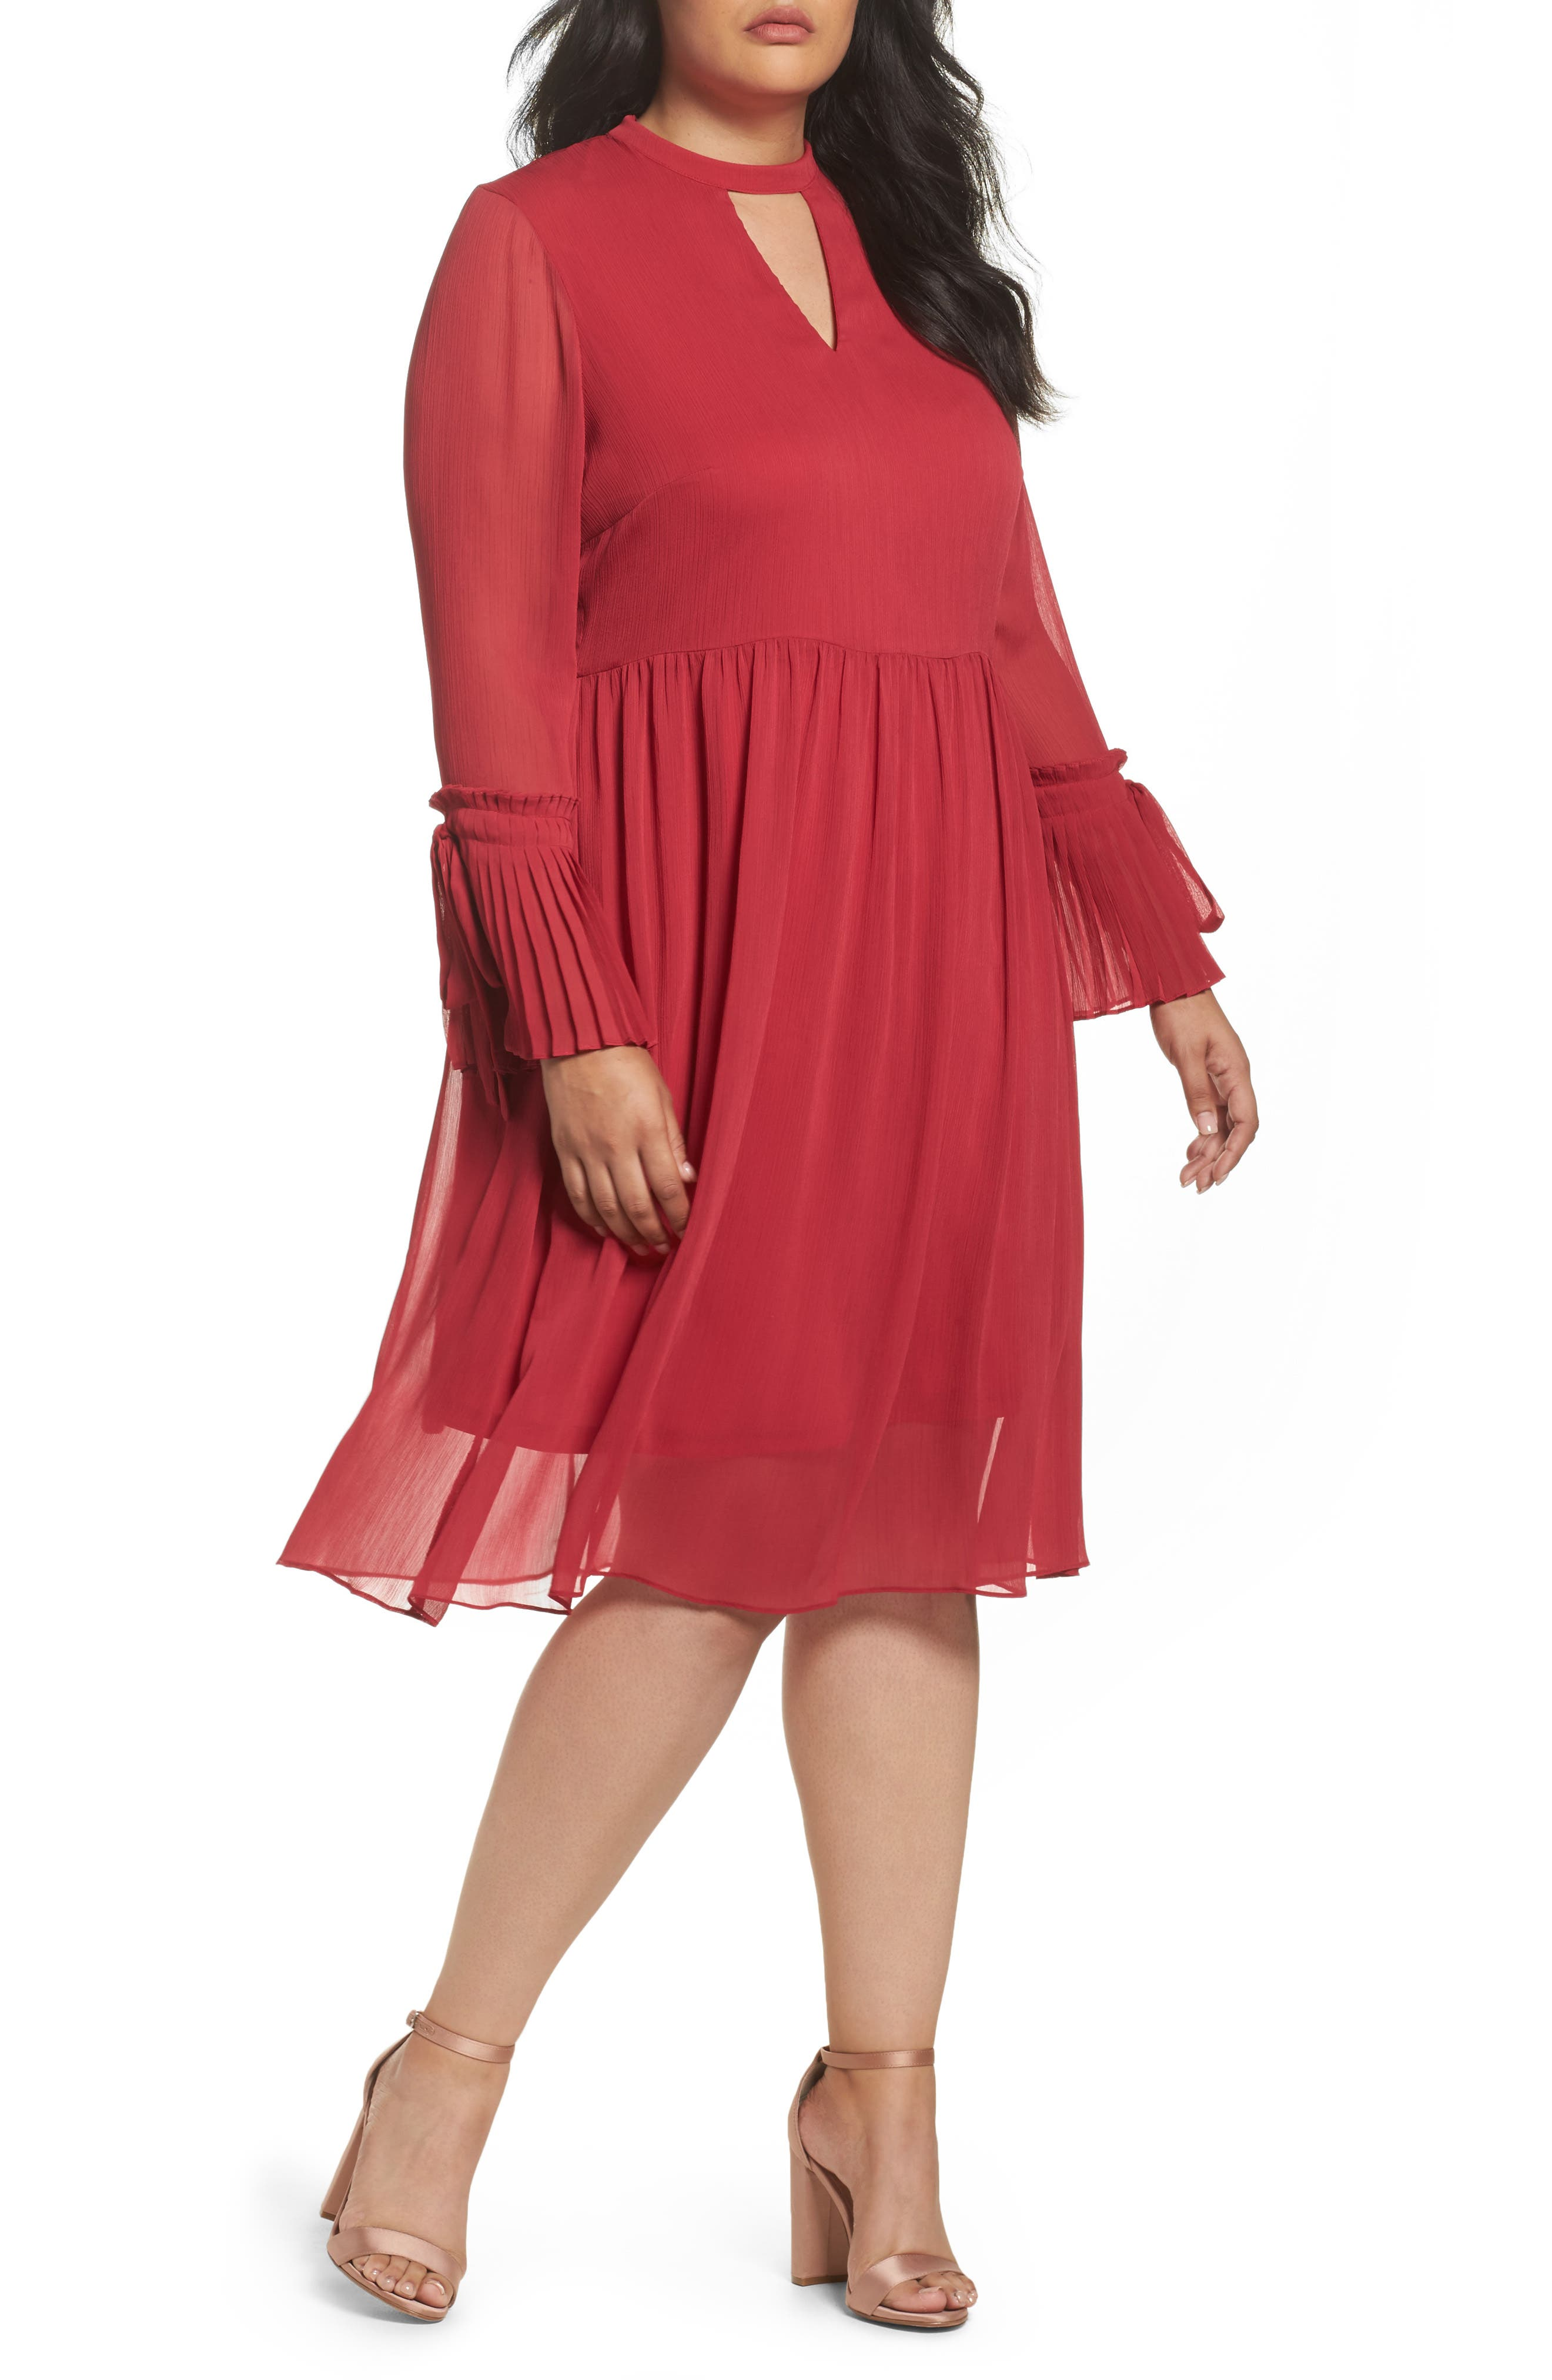 Alternate Image 1 Selected - LOST INK Pleat Cuff Fit & Flare Dress (Plus Size)